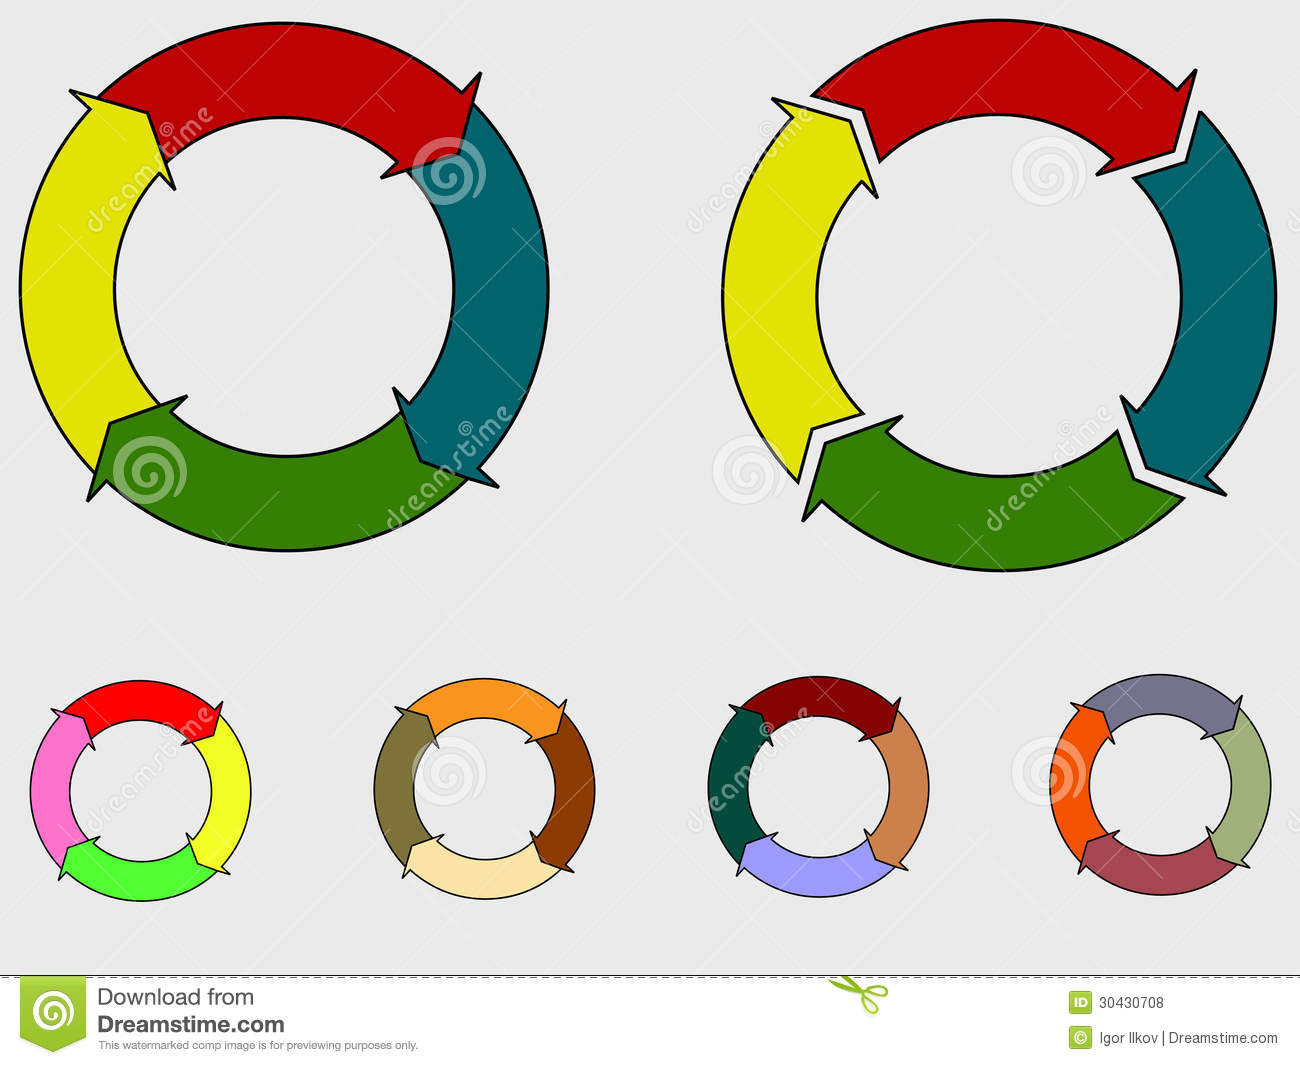 Quality management system plan do check act circle isolated on white